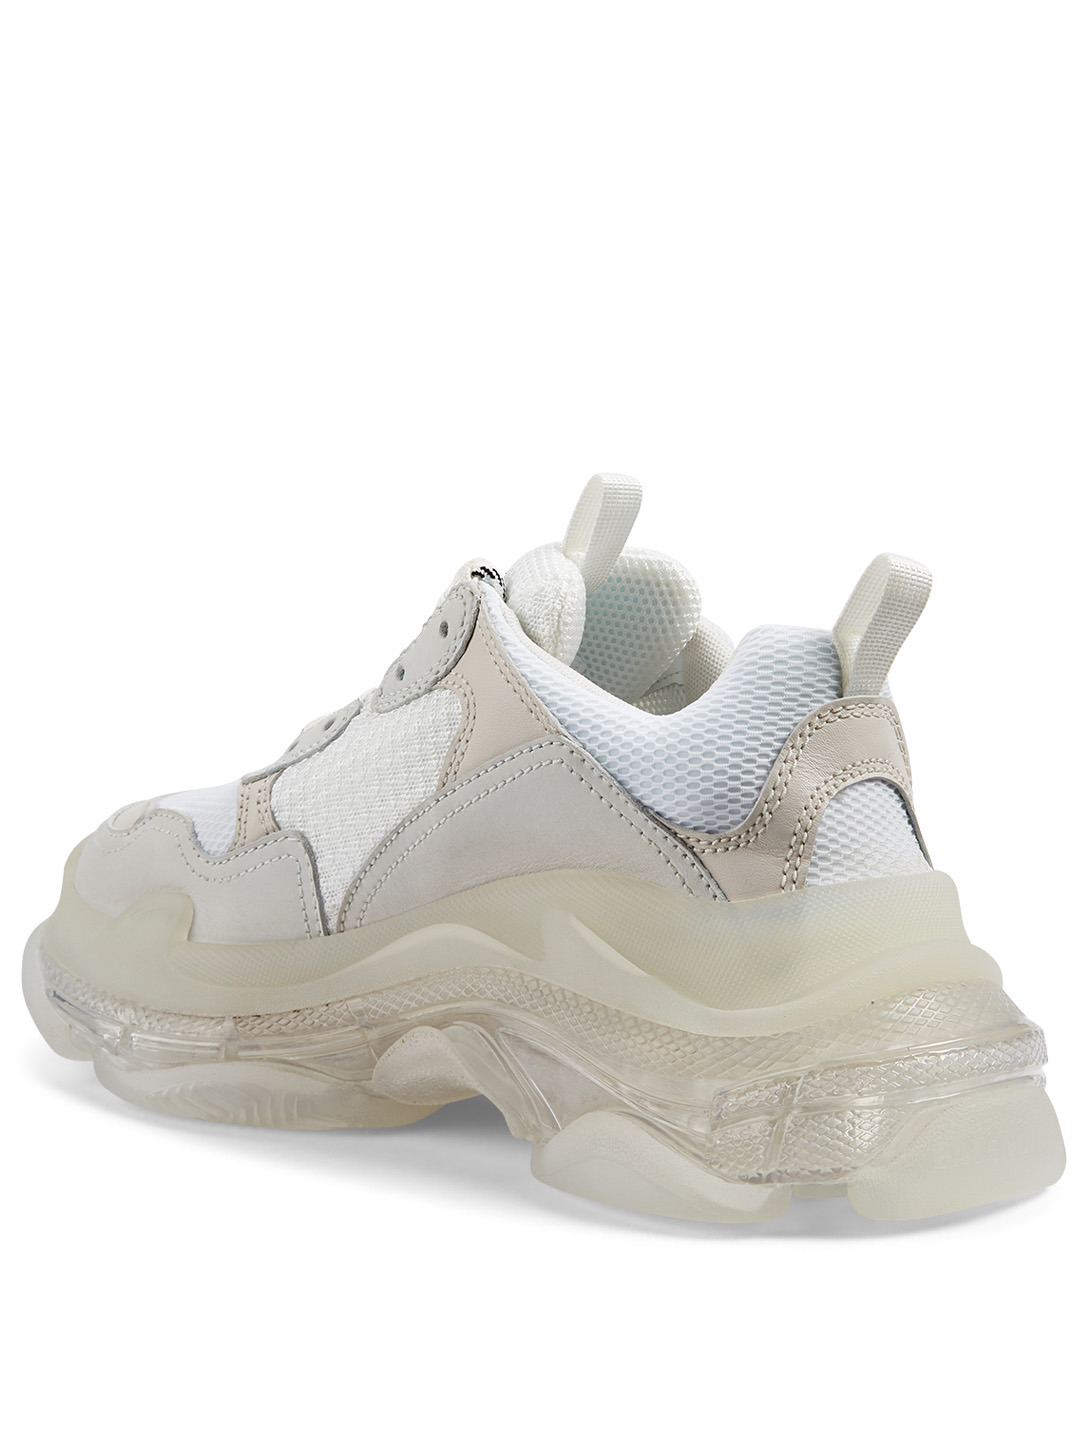 BALENCIAGA Triple S Bubble Mesh And Leather Sneakers Women's White